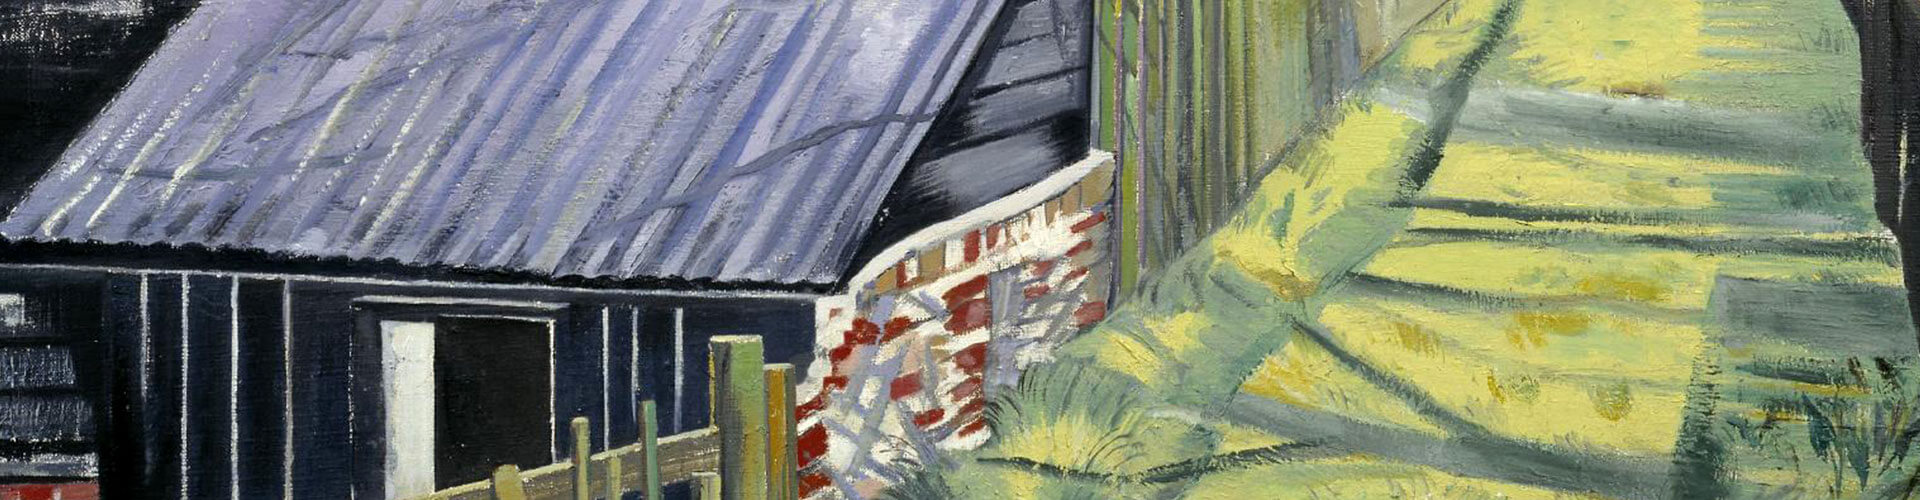 Behind the Inn, Greeting Card by Paul Nash - Featured on Desktop Devices